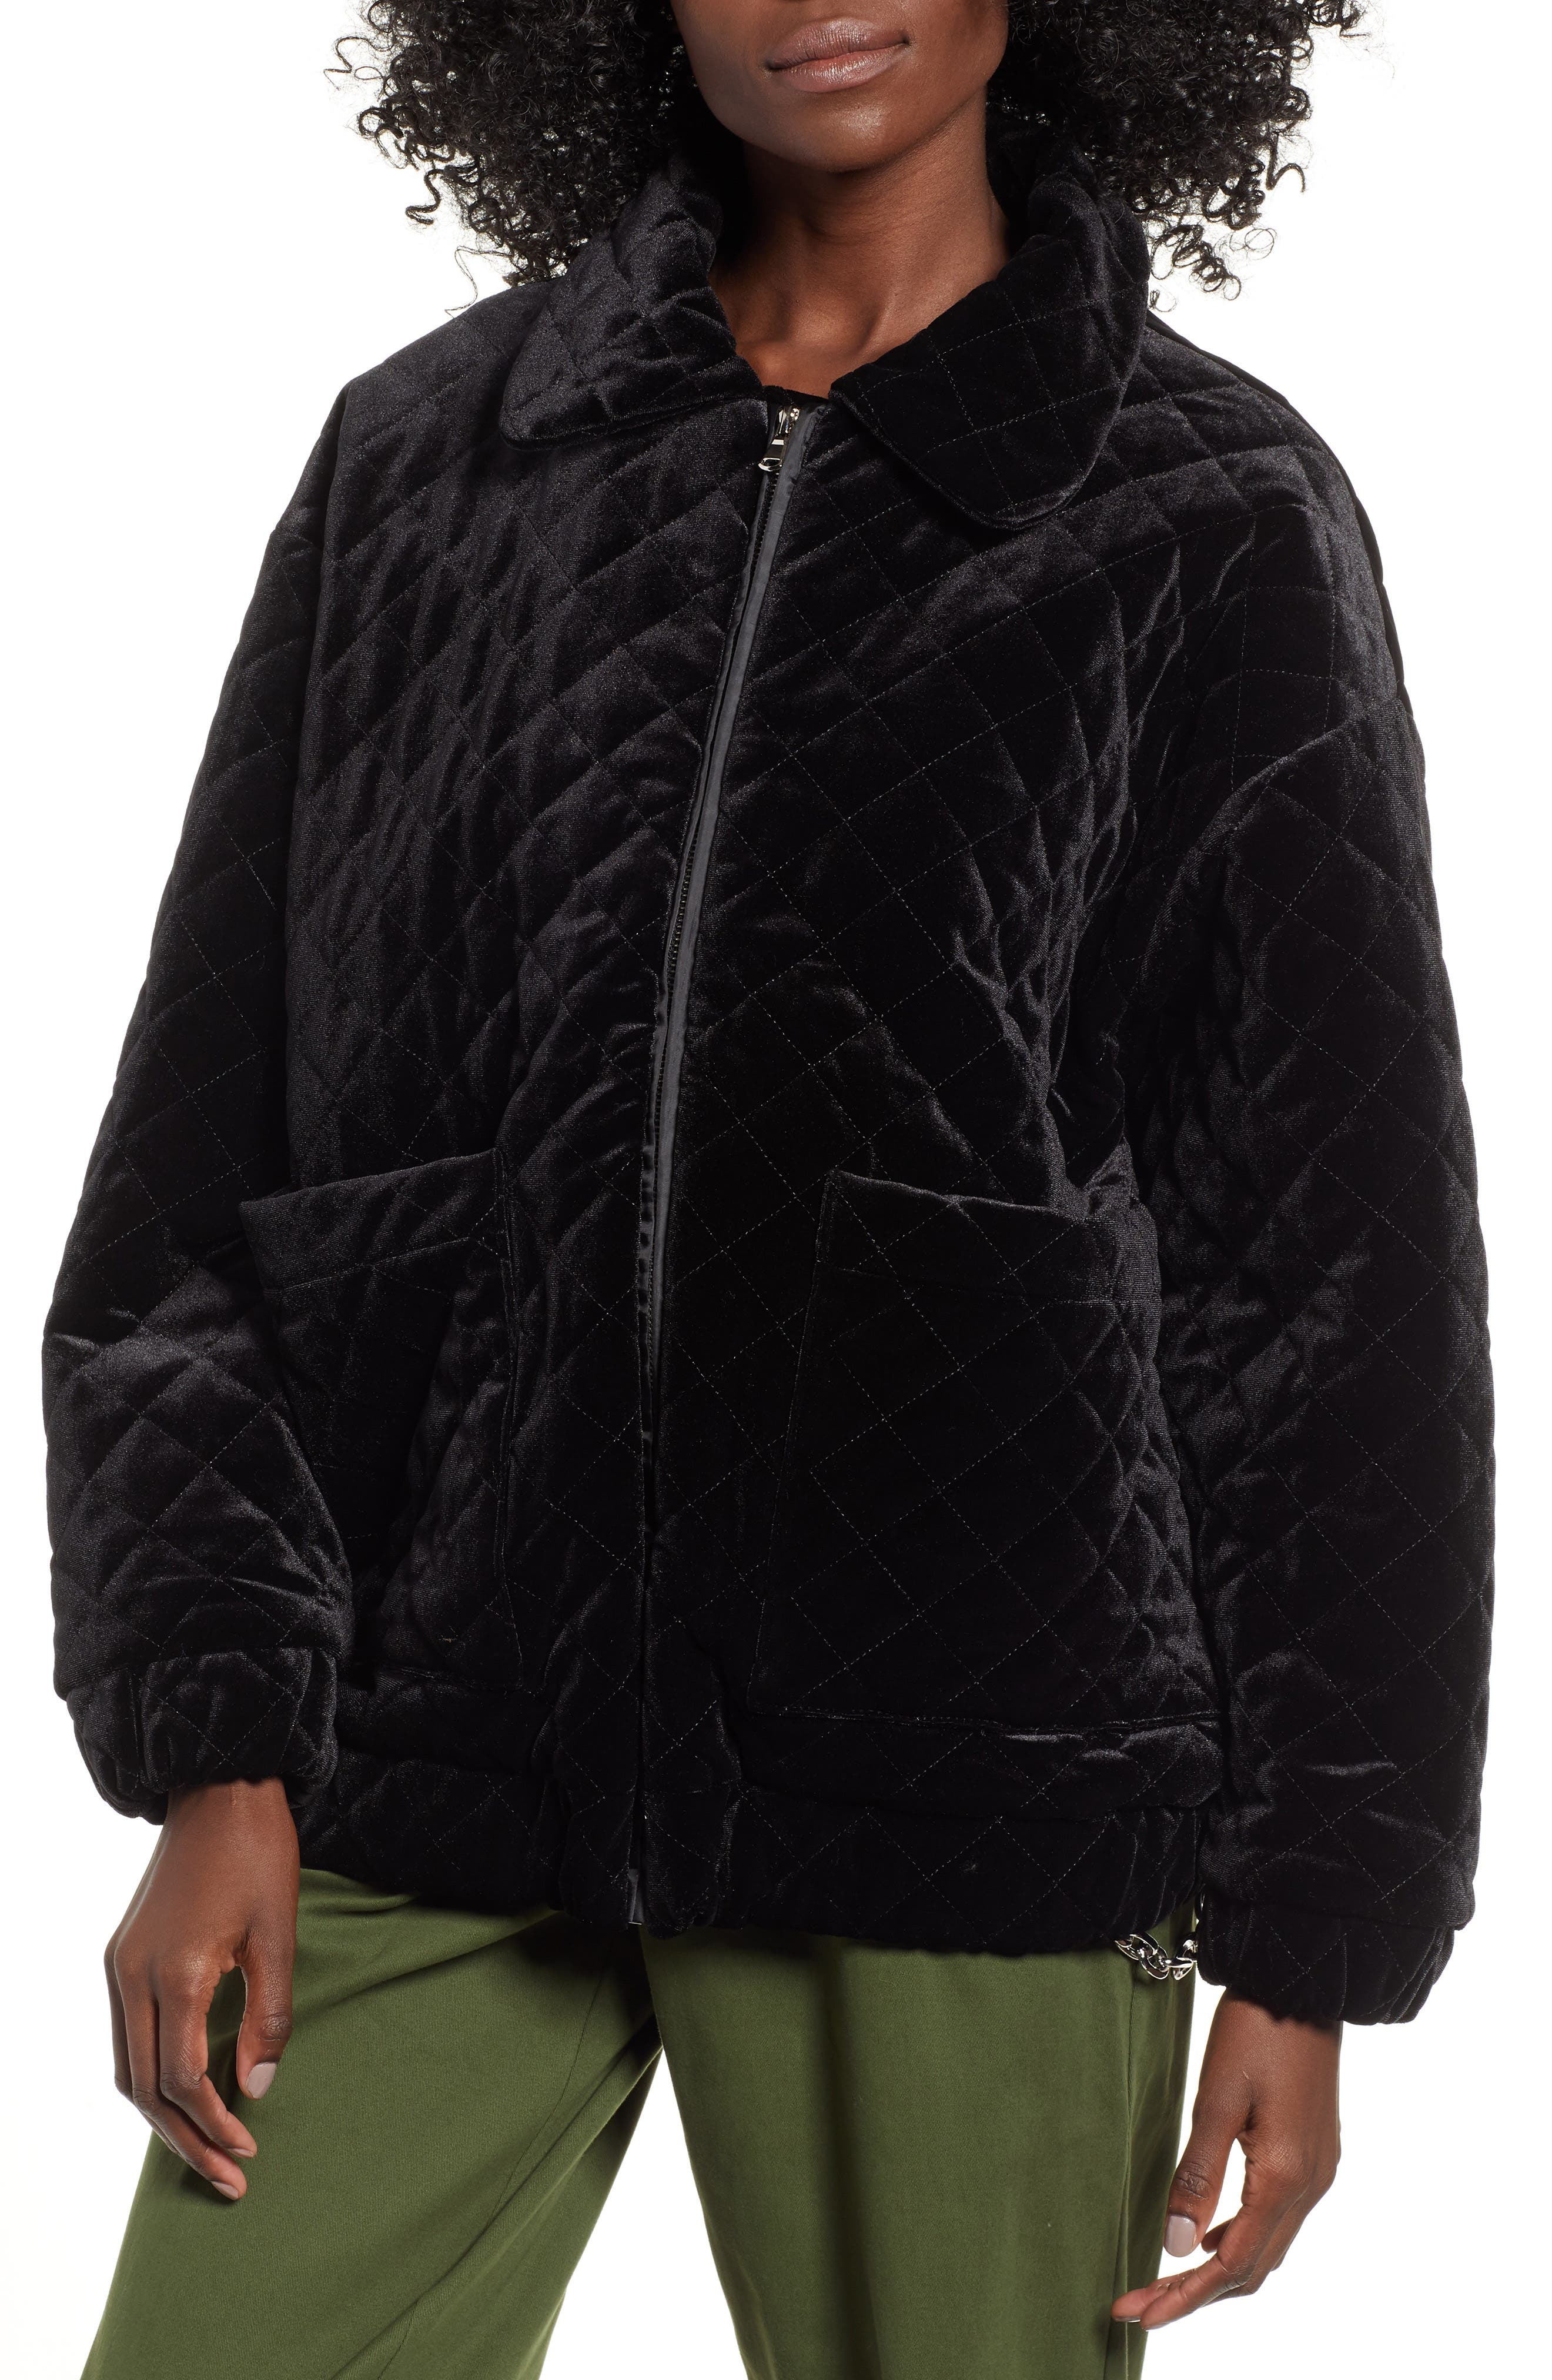 I.AM.GIA Contraband Quilted Velvet Jacket,                             Alternate thumbnail 4, color,                             BLACK